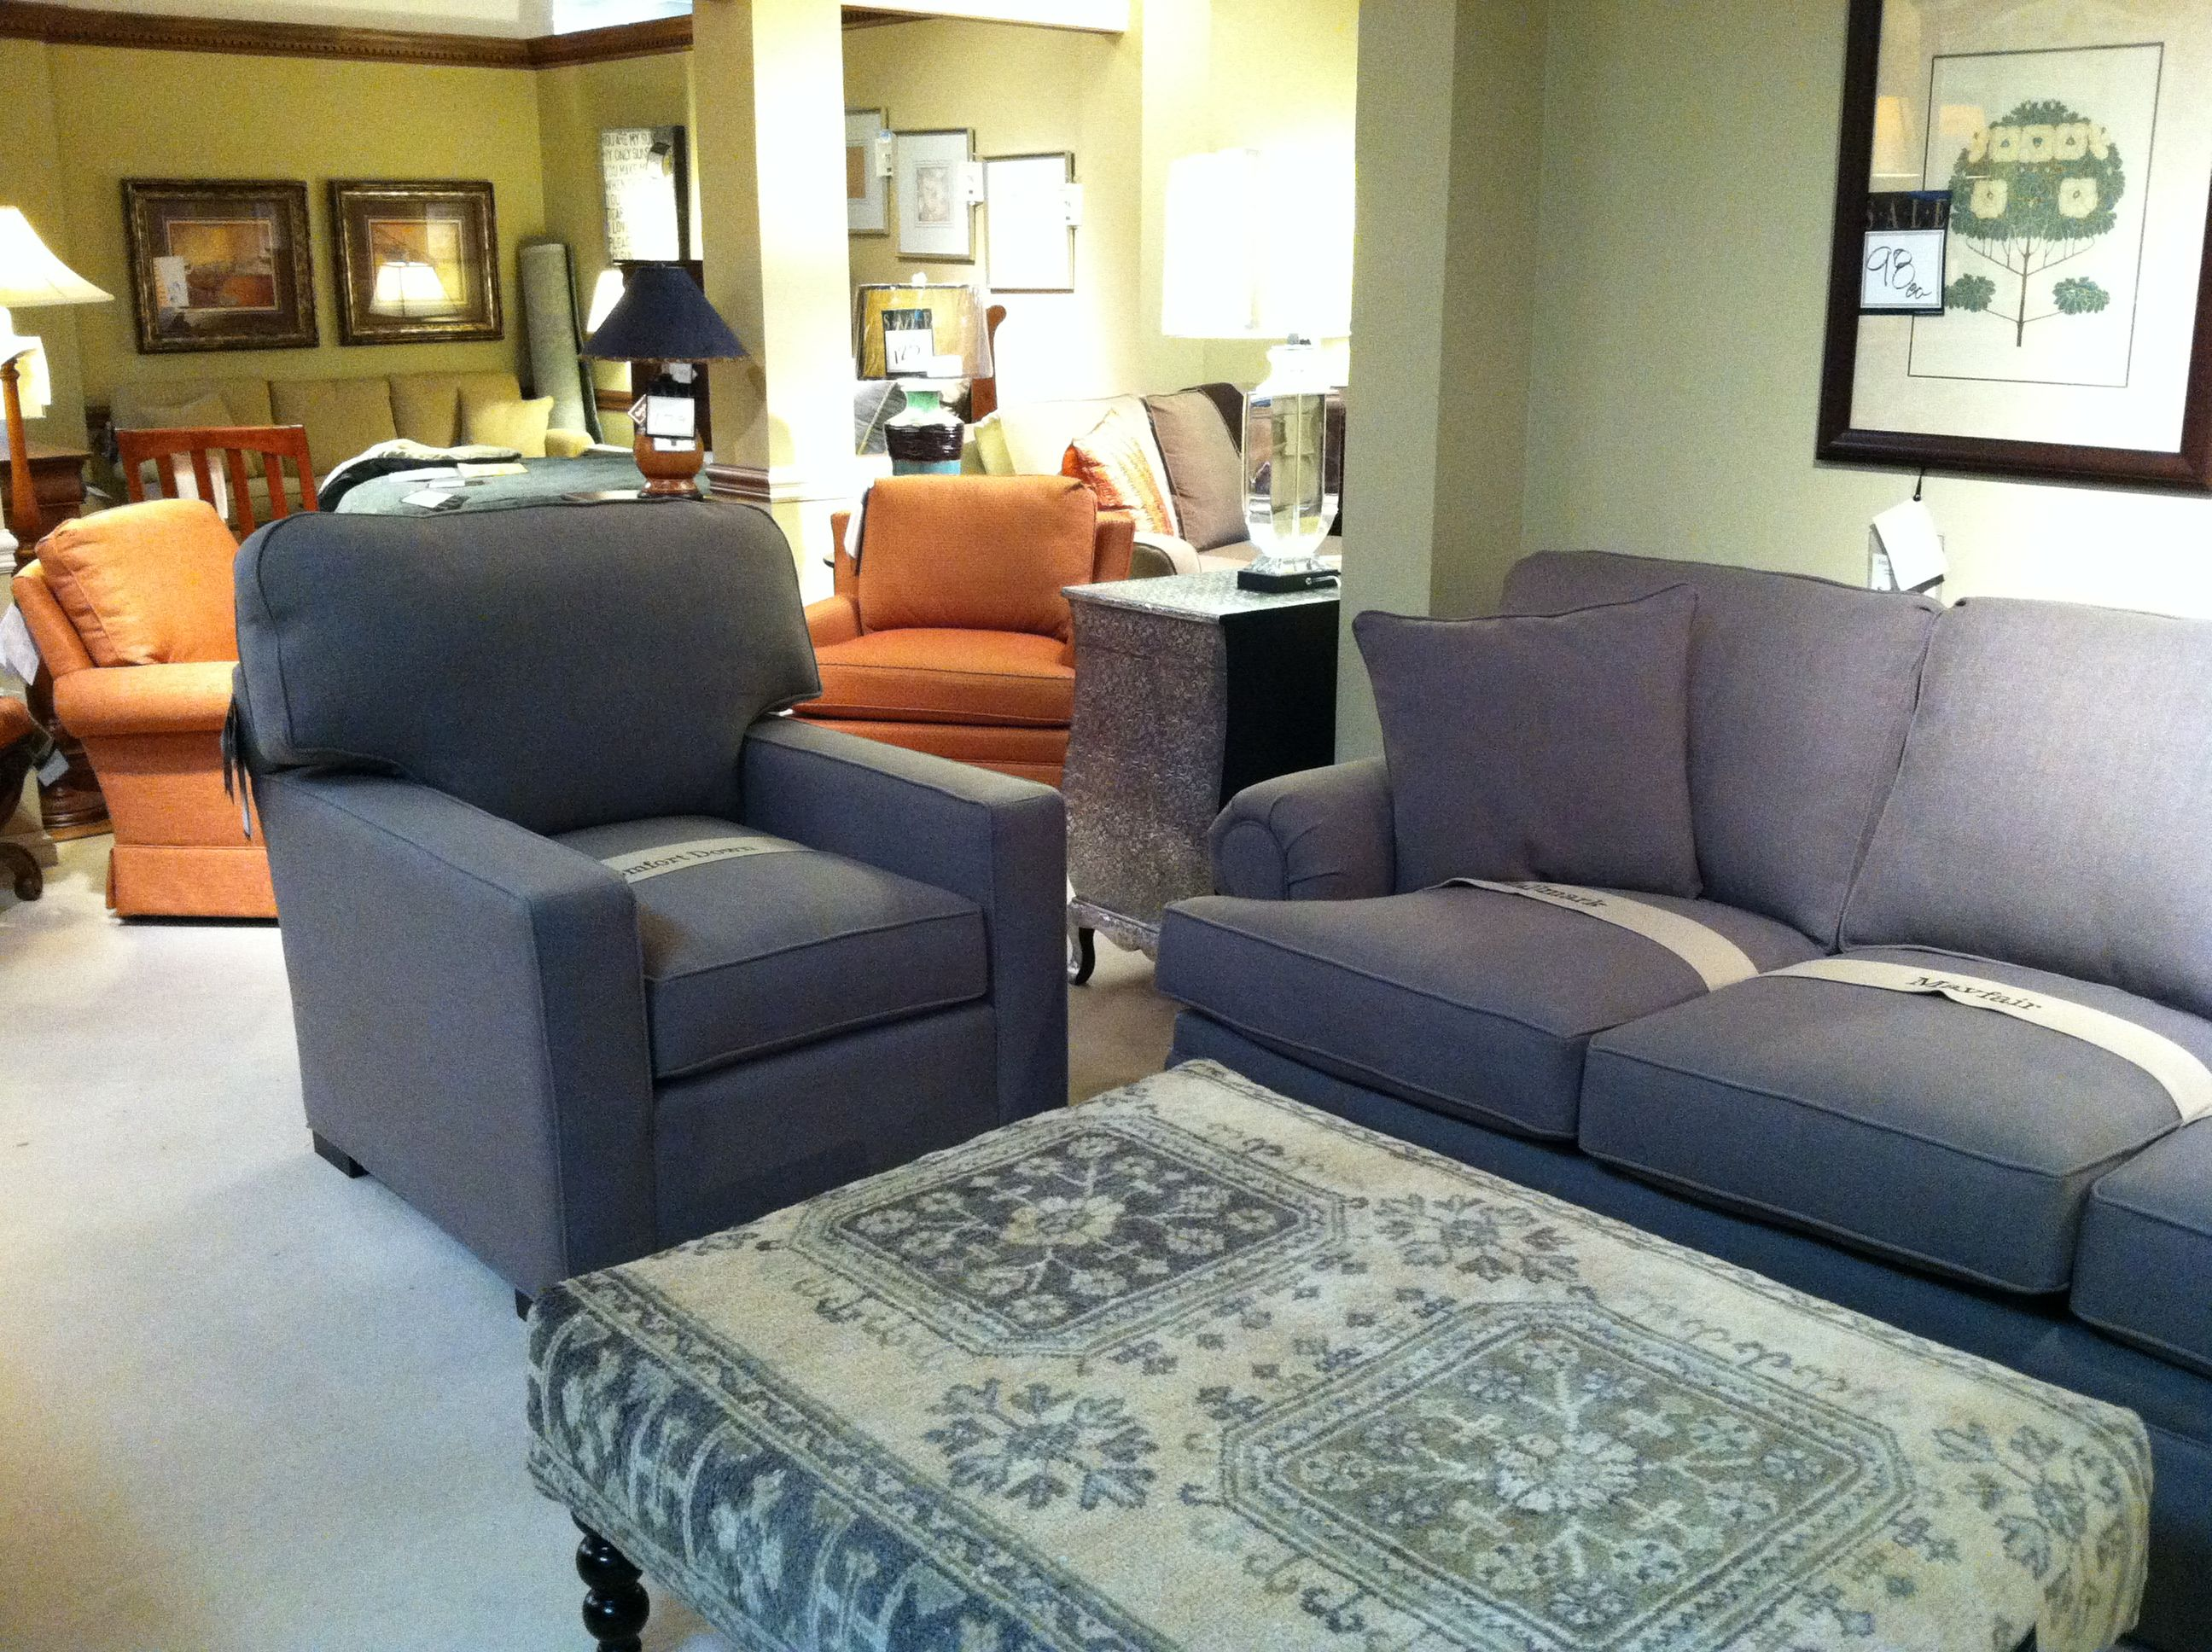 Photo From Bowen Town Country Features Cr Laine Furniture S